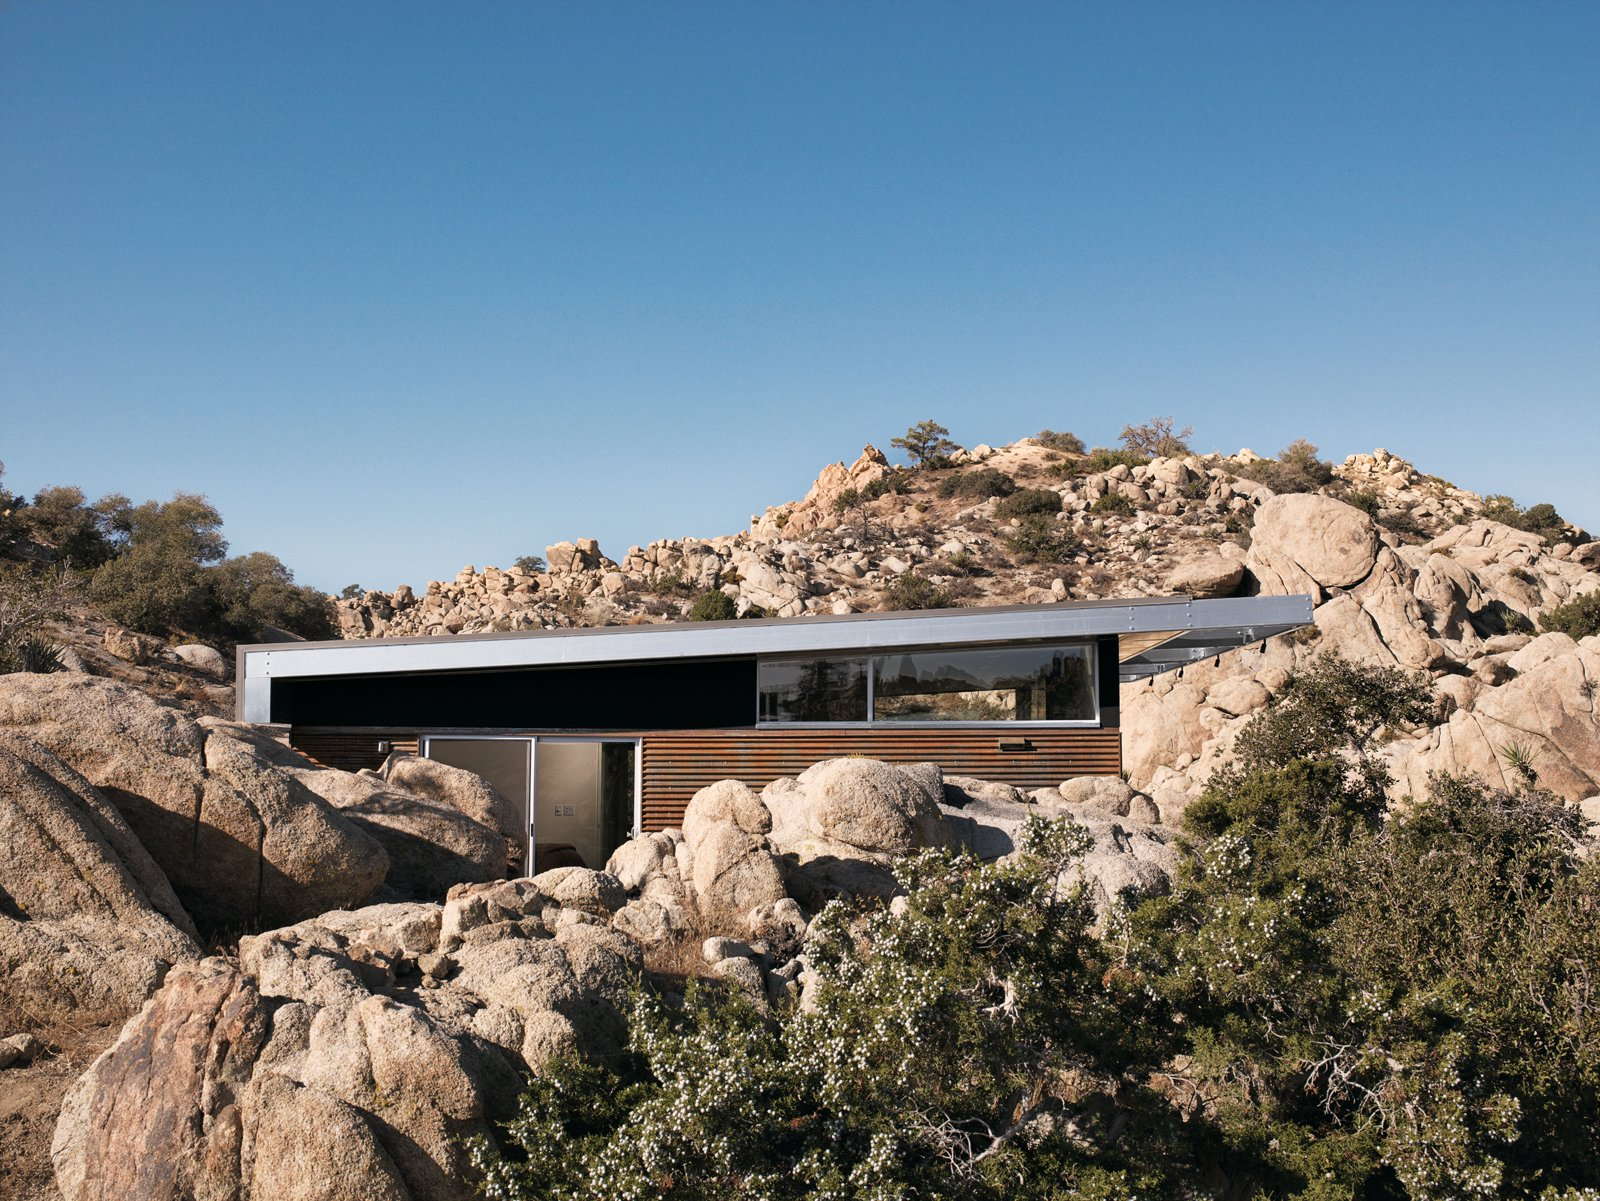 """For all its hard environmental work, one of the most immediate of the Blue Sky Home's pleasures is how it sits so snugly in its desert surroundings. Tagged: Outdoor, Desert, Boulders, Trees, and Shrubs.  Photo 10 of 10 in Small """"Hybrid Prefab"""" Home in the Desert"""